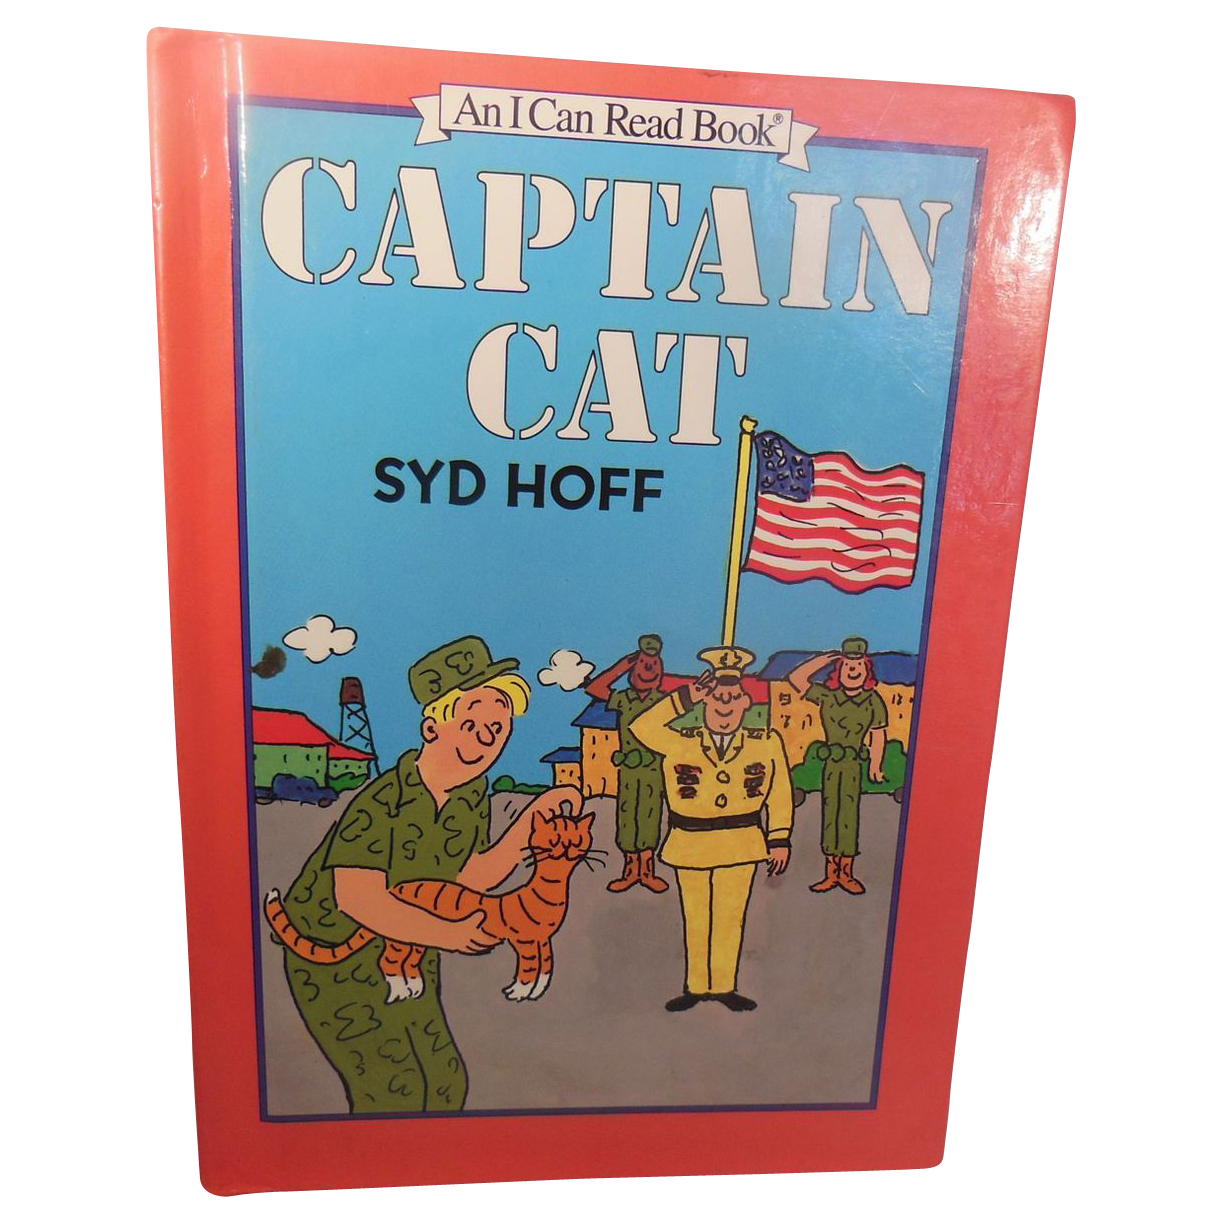 Book – Captain Cat by Syd Hoff